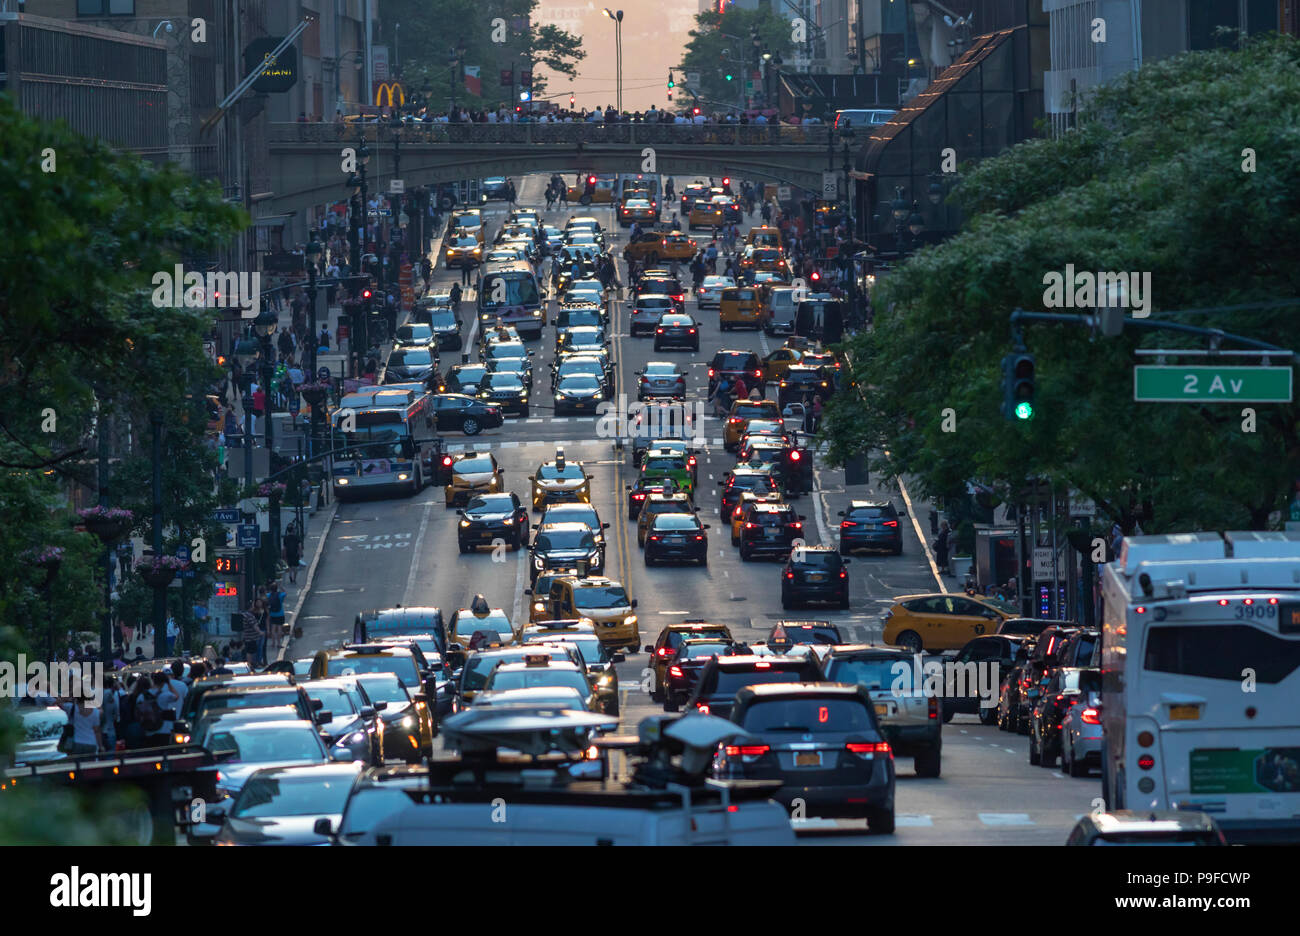 Congestion of pedestrians and cars in Manhattan, New York City. - Stock Image